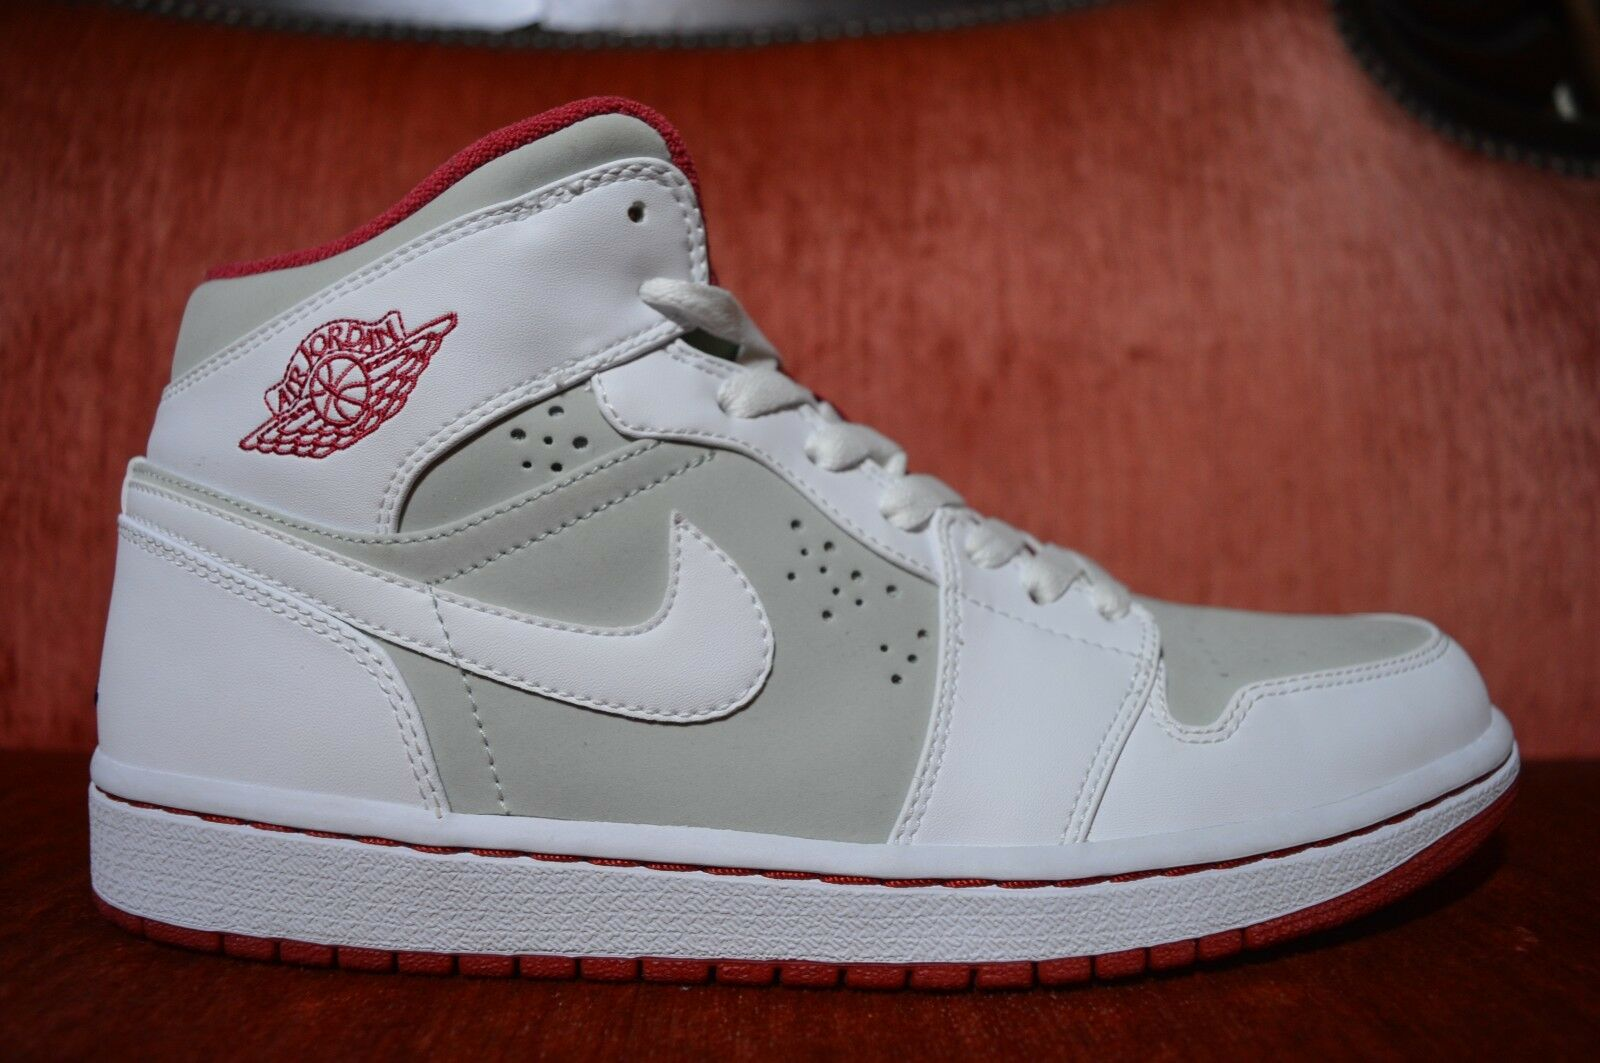 CLEAN 2009 Nike Air Jordan 1 Retro Hare Jordan Light Silver/white-true, Size 9.5